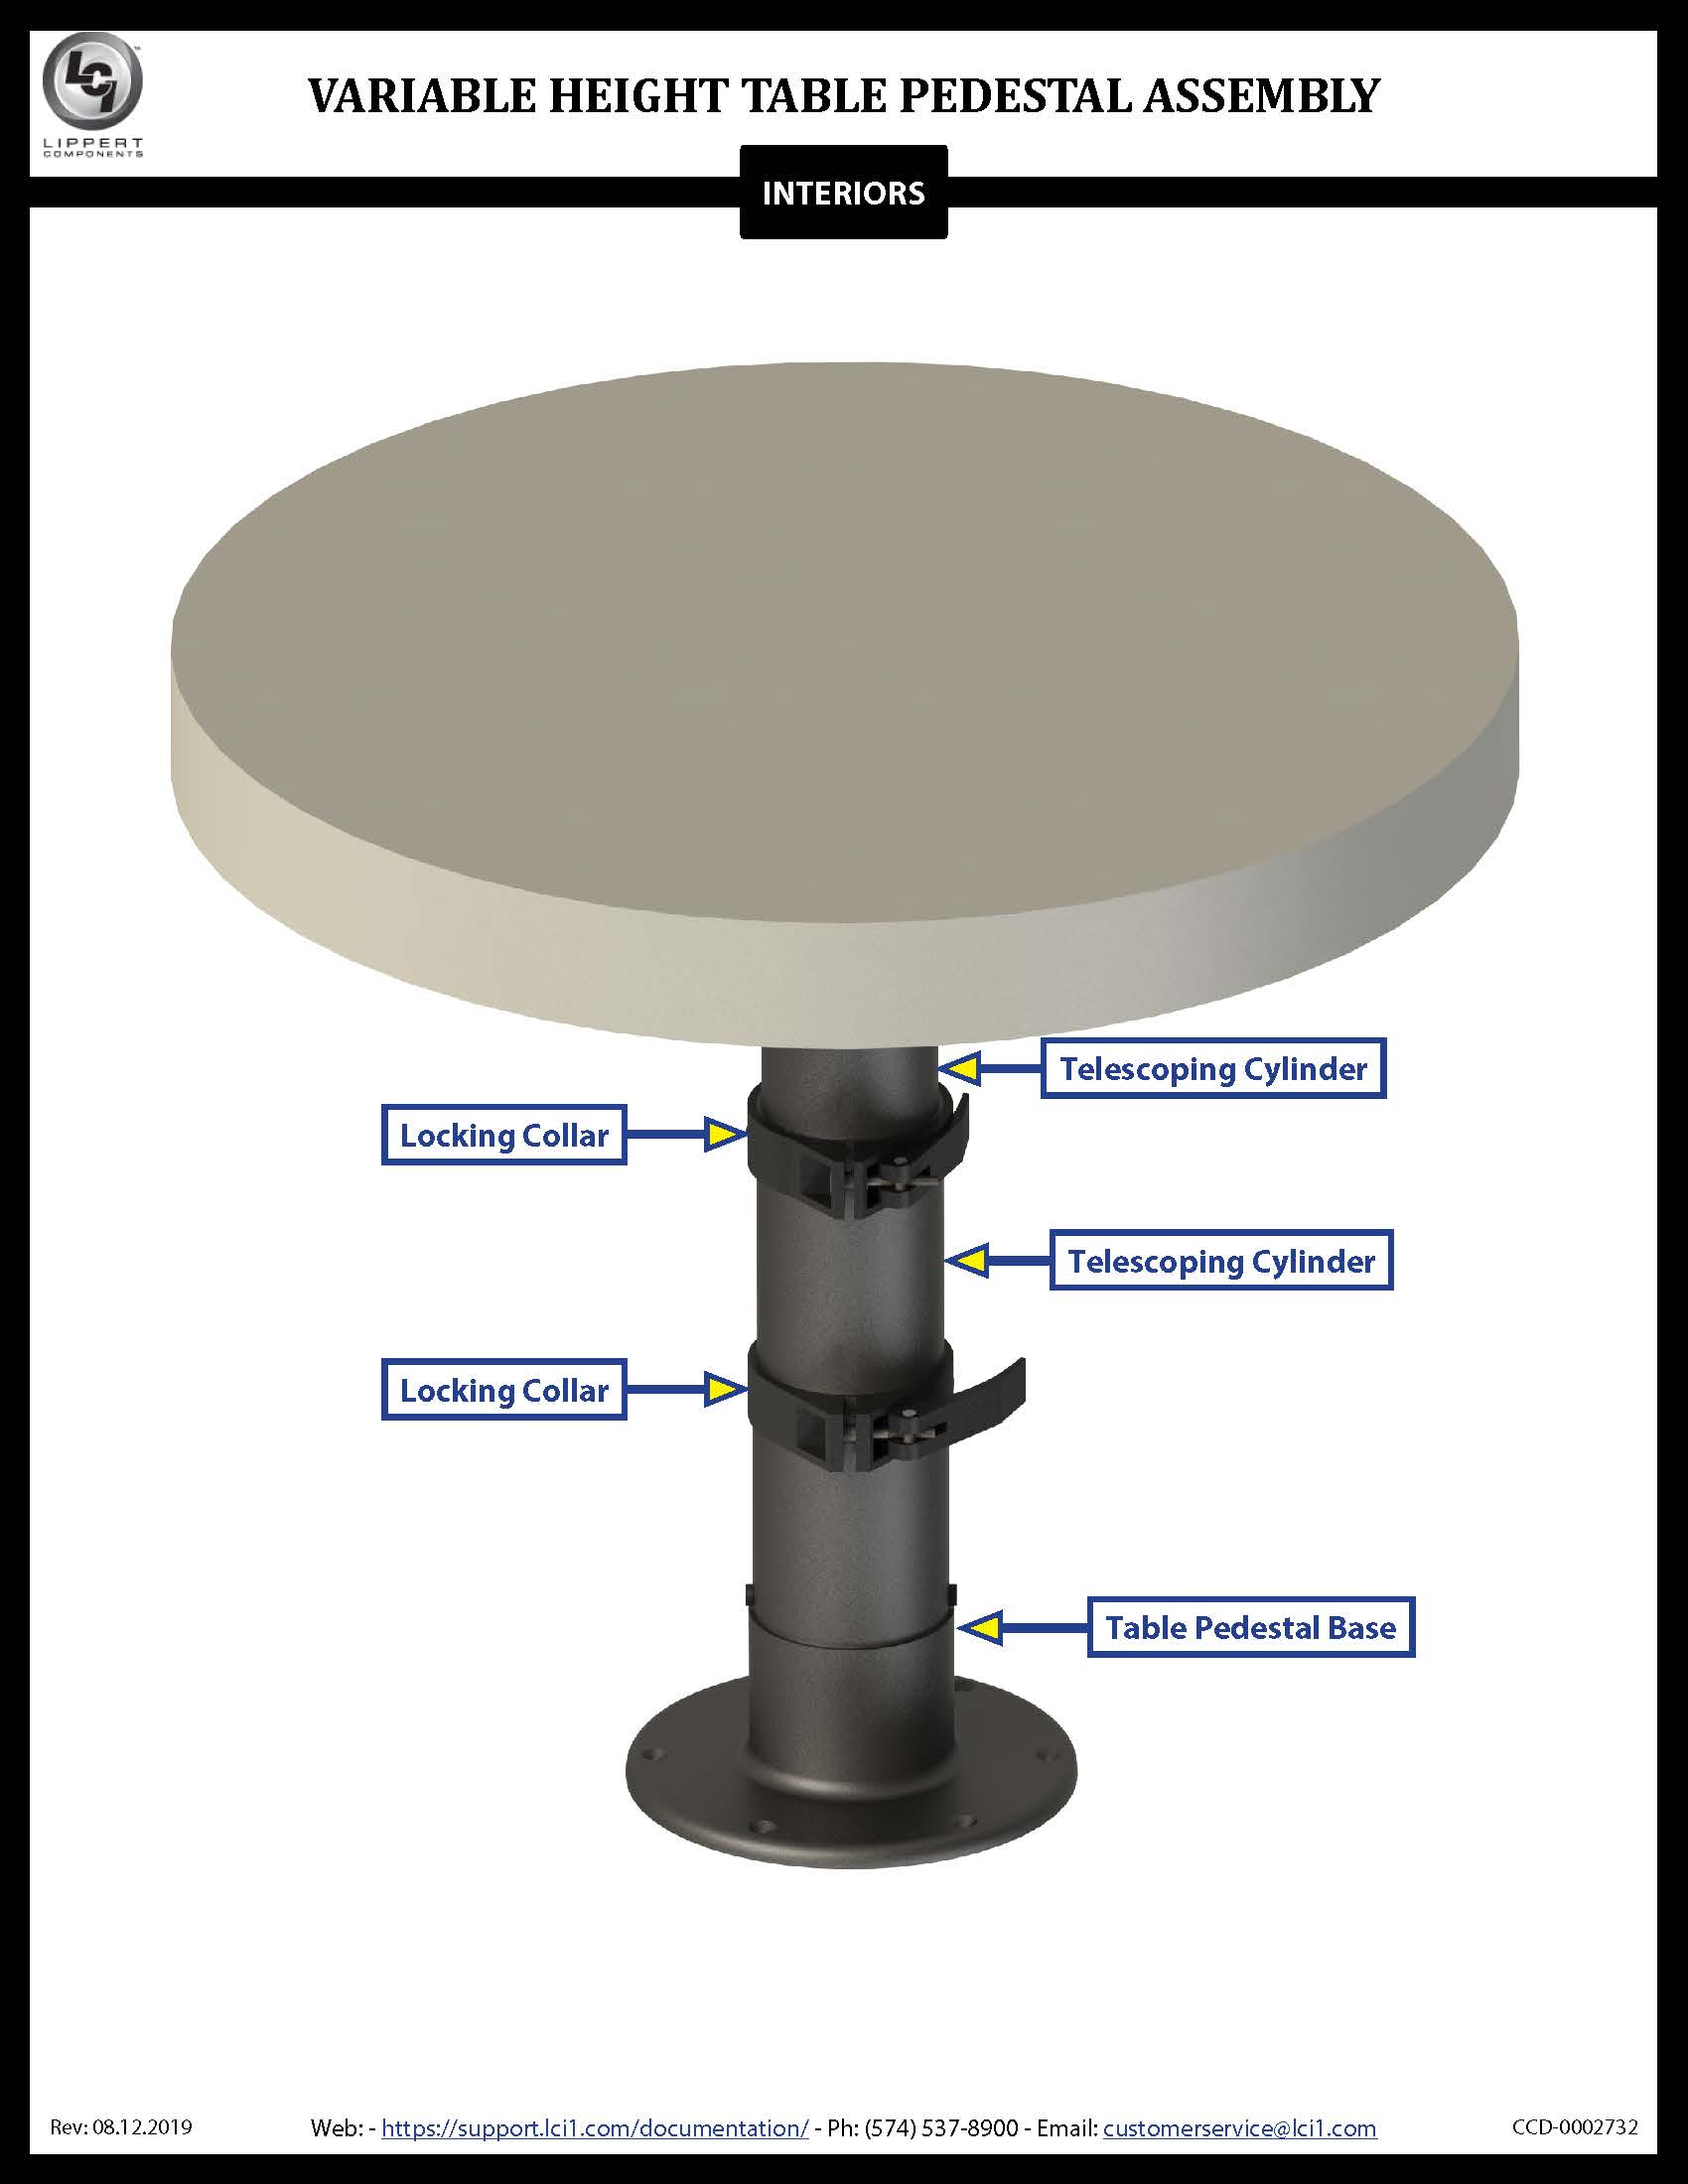 Variable Height Table Pedestal Assembly